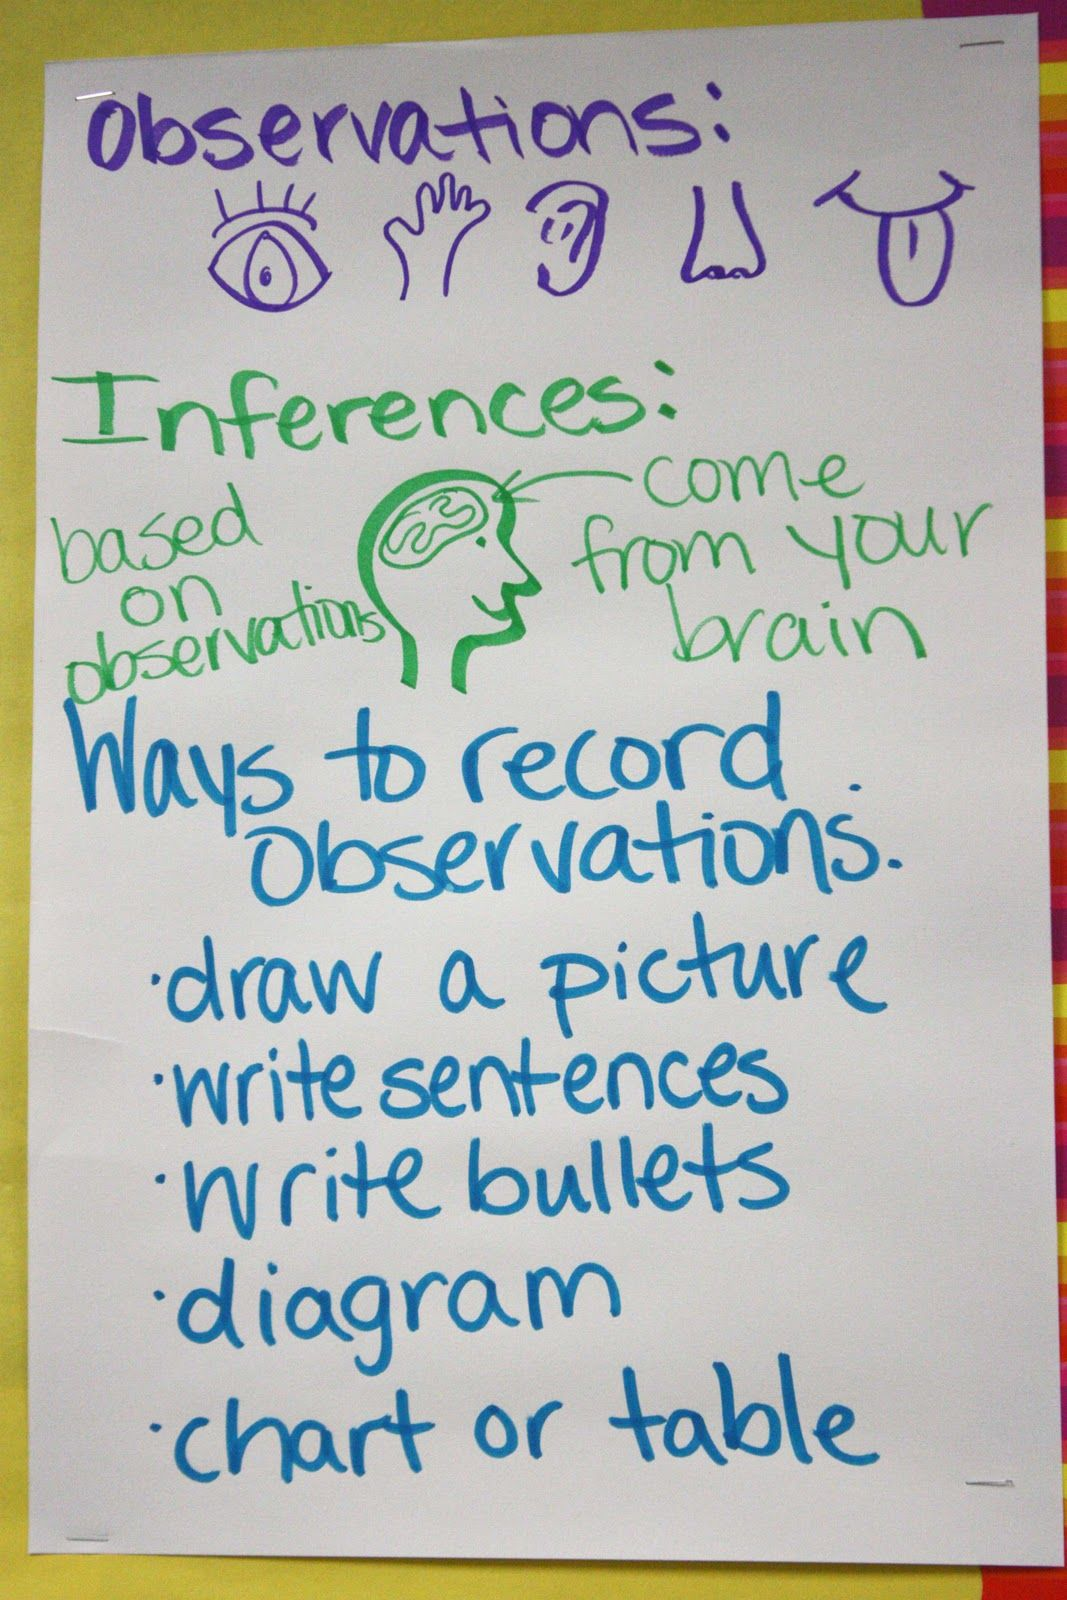 000 observations and inferences School Science anchor